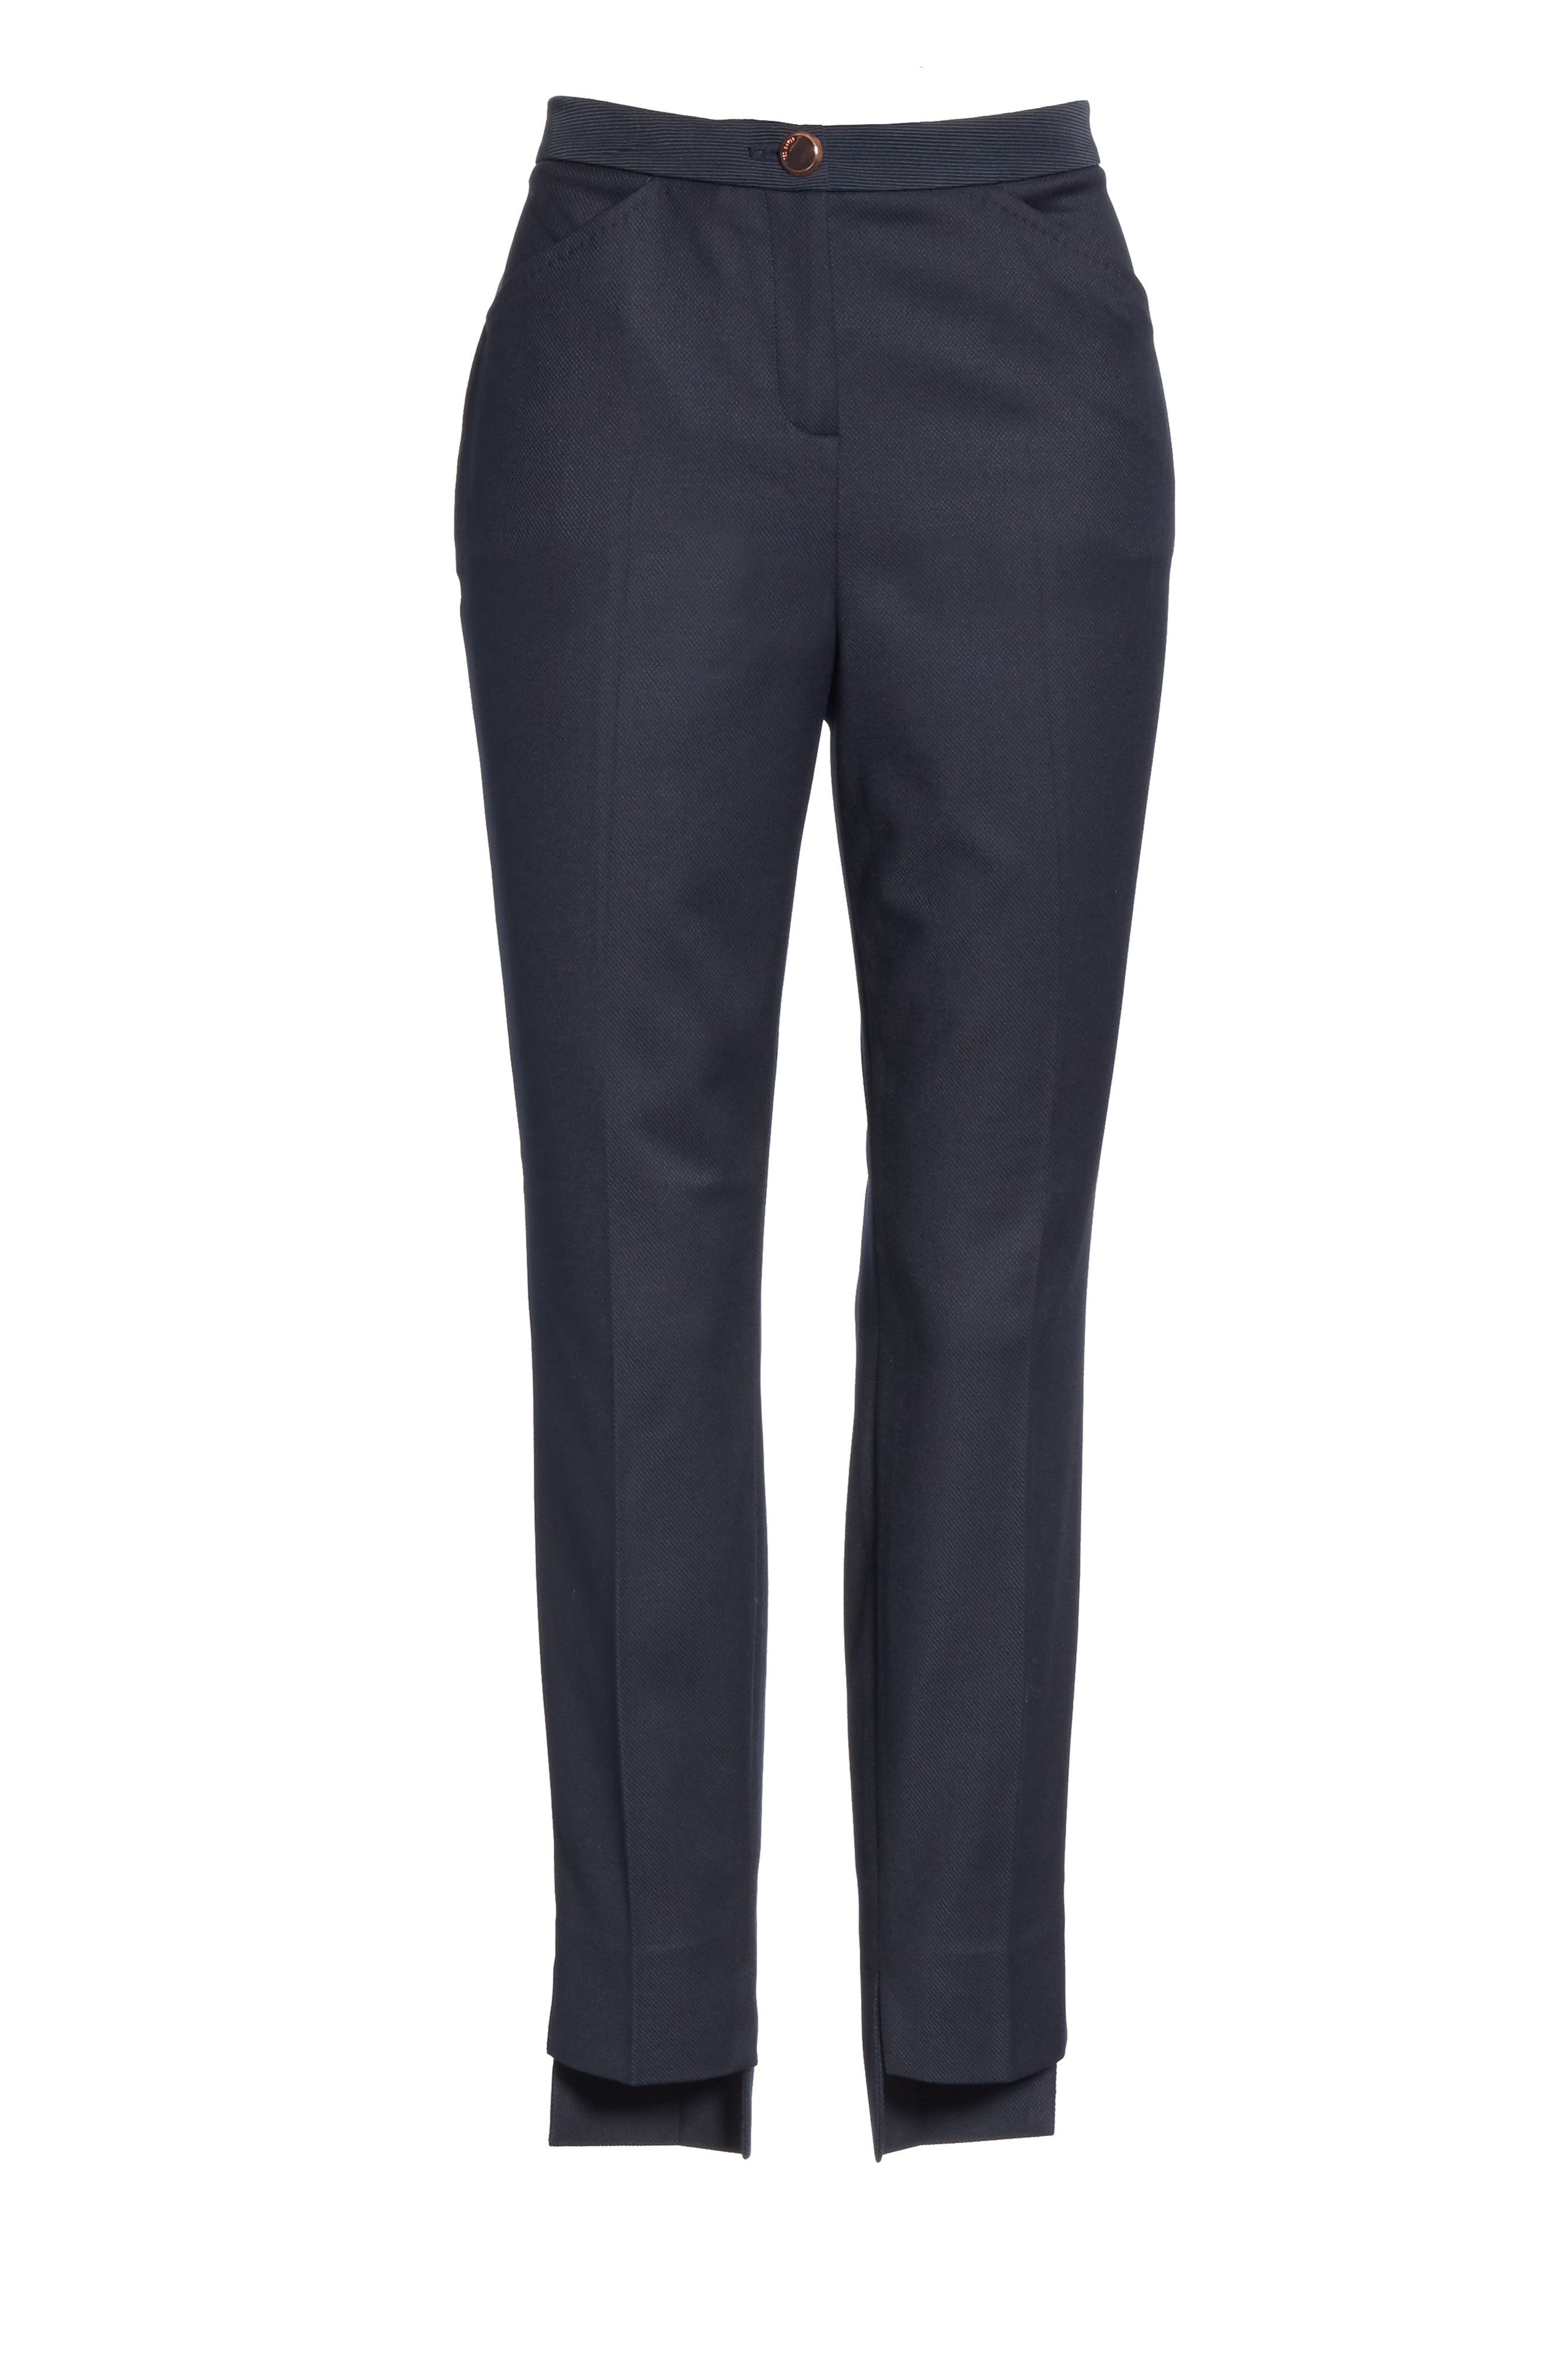 TED BAKER LONDON,                             Ted Working Title Rivaat Skinny Trousers,                             Alternate thumbnail 6, color,                             402